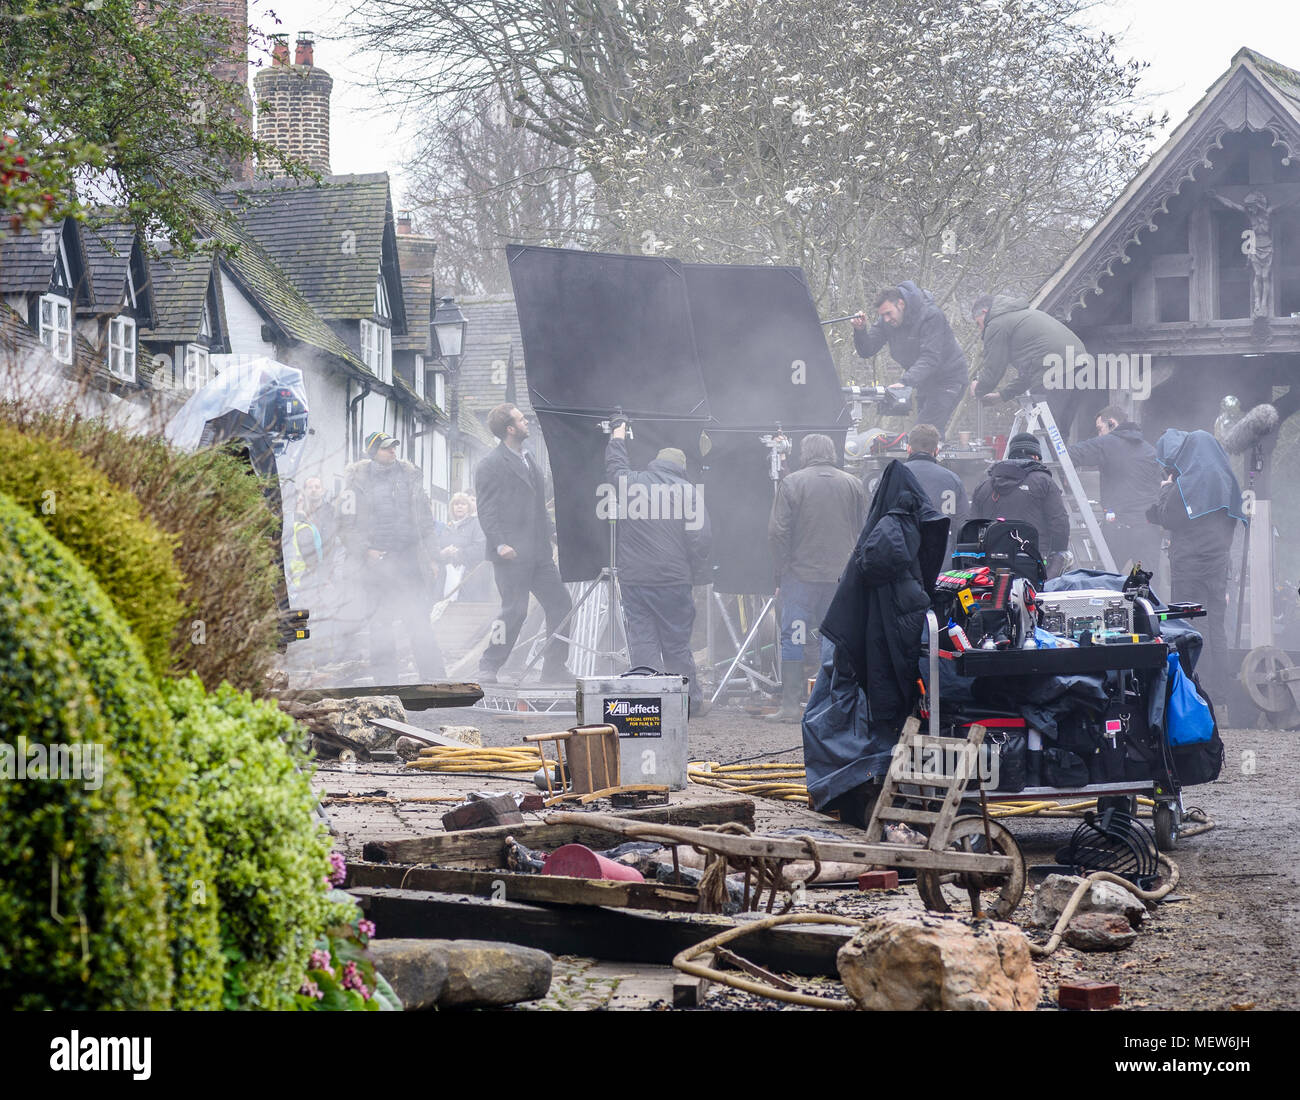 Great Budworth, UK. 11th April, 2018. Actor Rafe Spall acting a scene on set in the new BBC drama 'War Of The Worlds' by HG Wells, - Stock Image